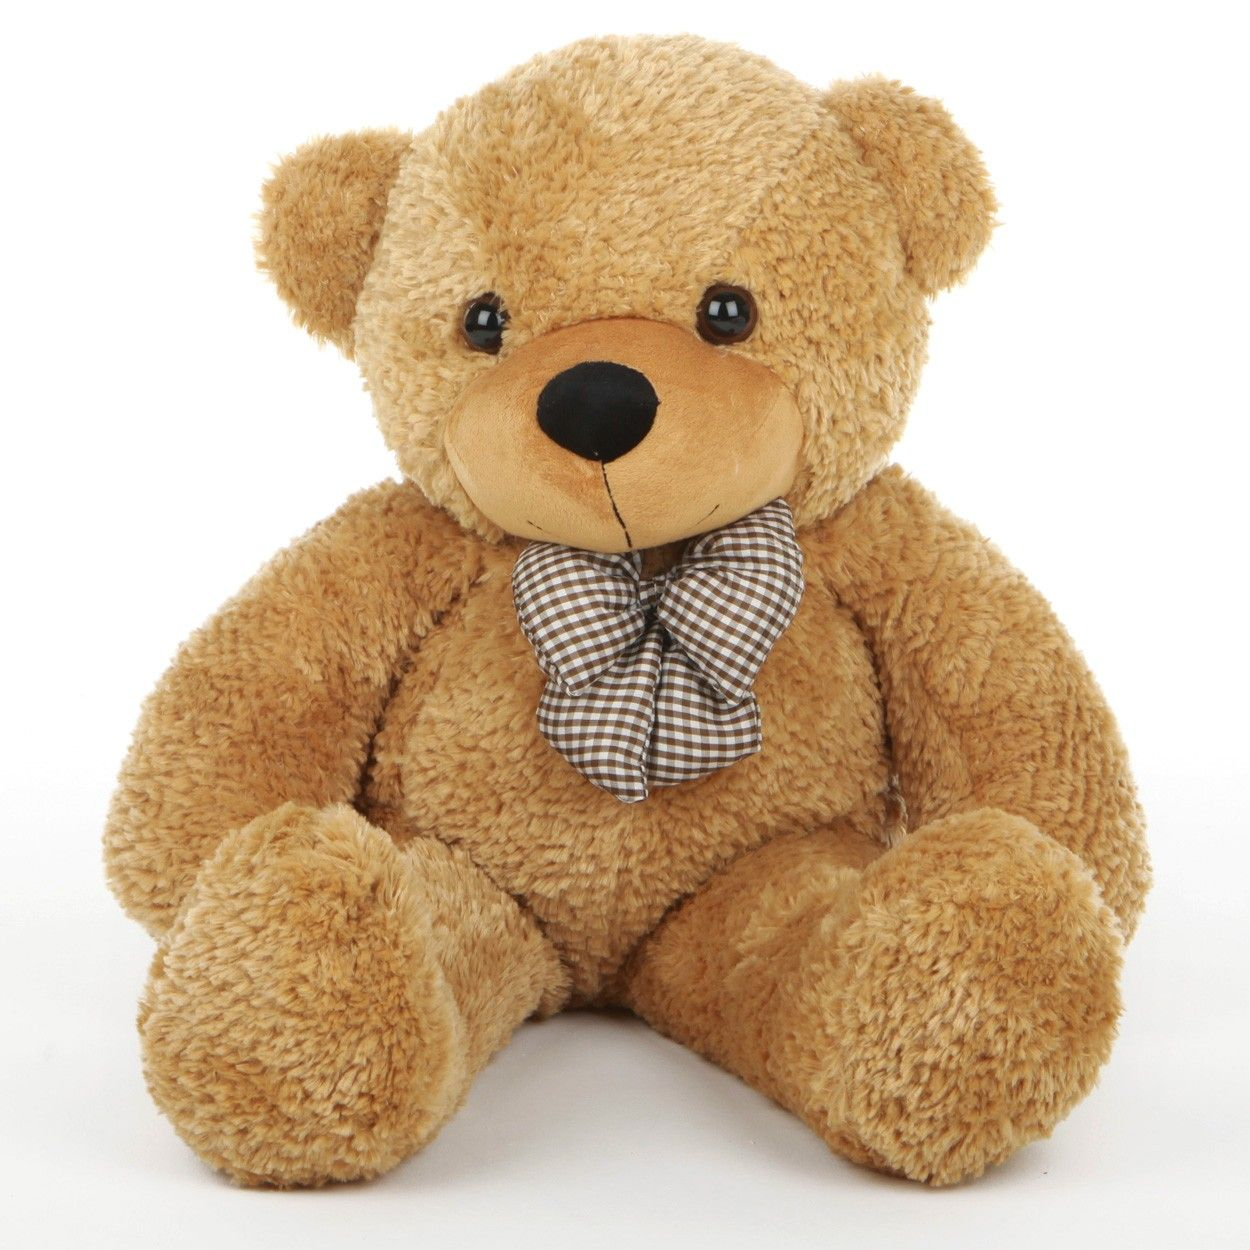 Shaggy Cuddles Cute and Cuddly Plush Amber Teddy Bear 30in ...